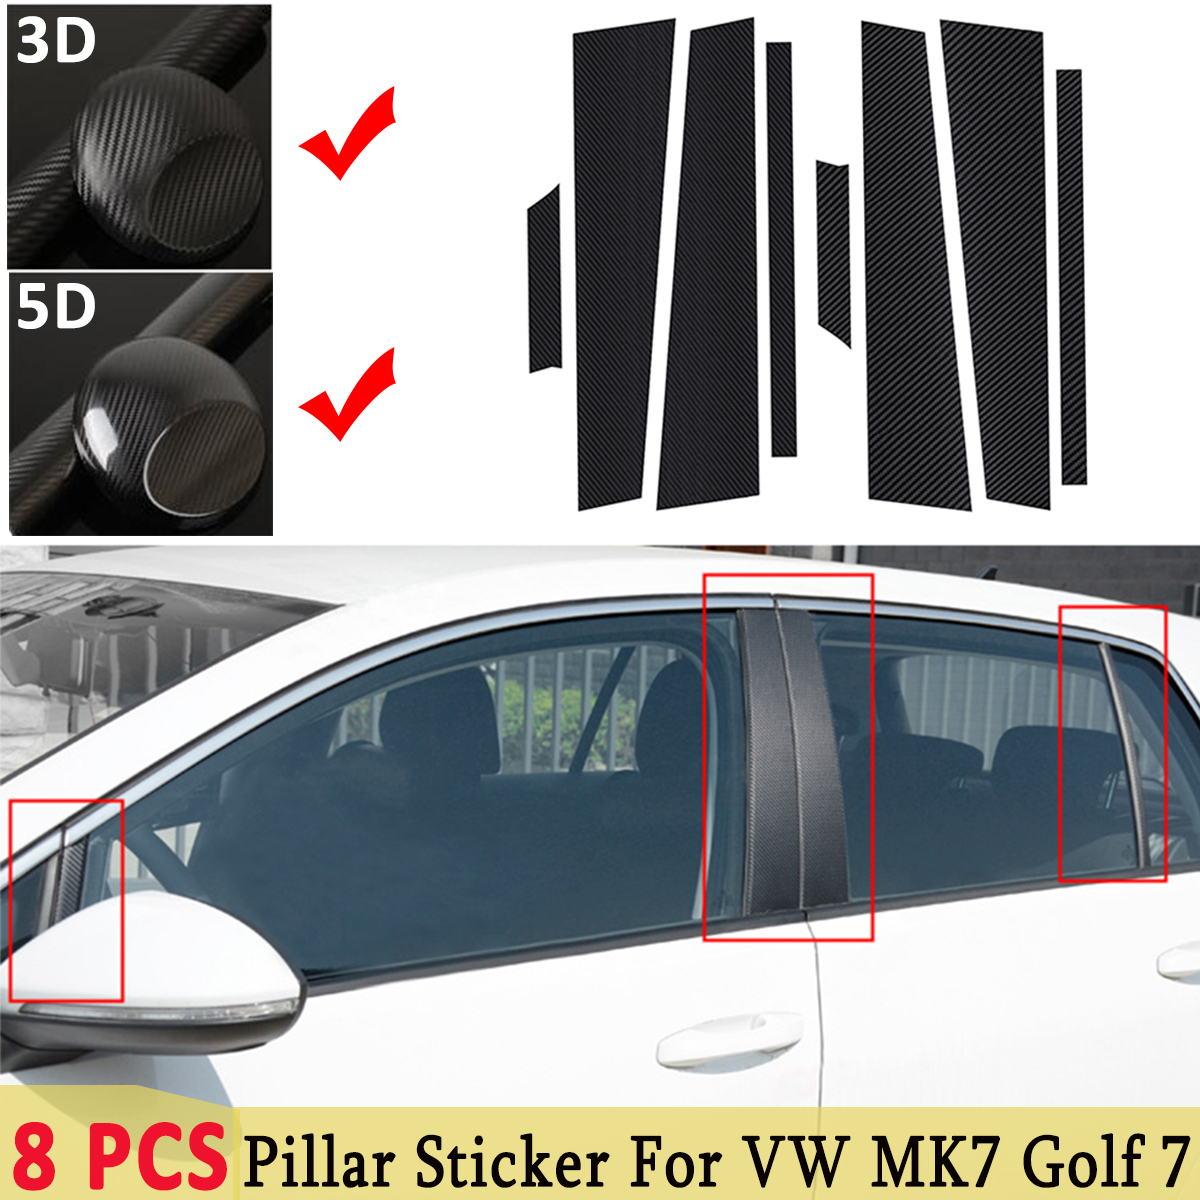 3D / 5D For Volkswagen For <font><b>VW</b></font> MK7 <font><b>Golf</b></font> <font><b>7</b></font> Accessories <font><b>Carbon</b></font> Fiber Style Auto Window Frame ABC Pillar Film Sticker Decals Trim image